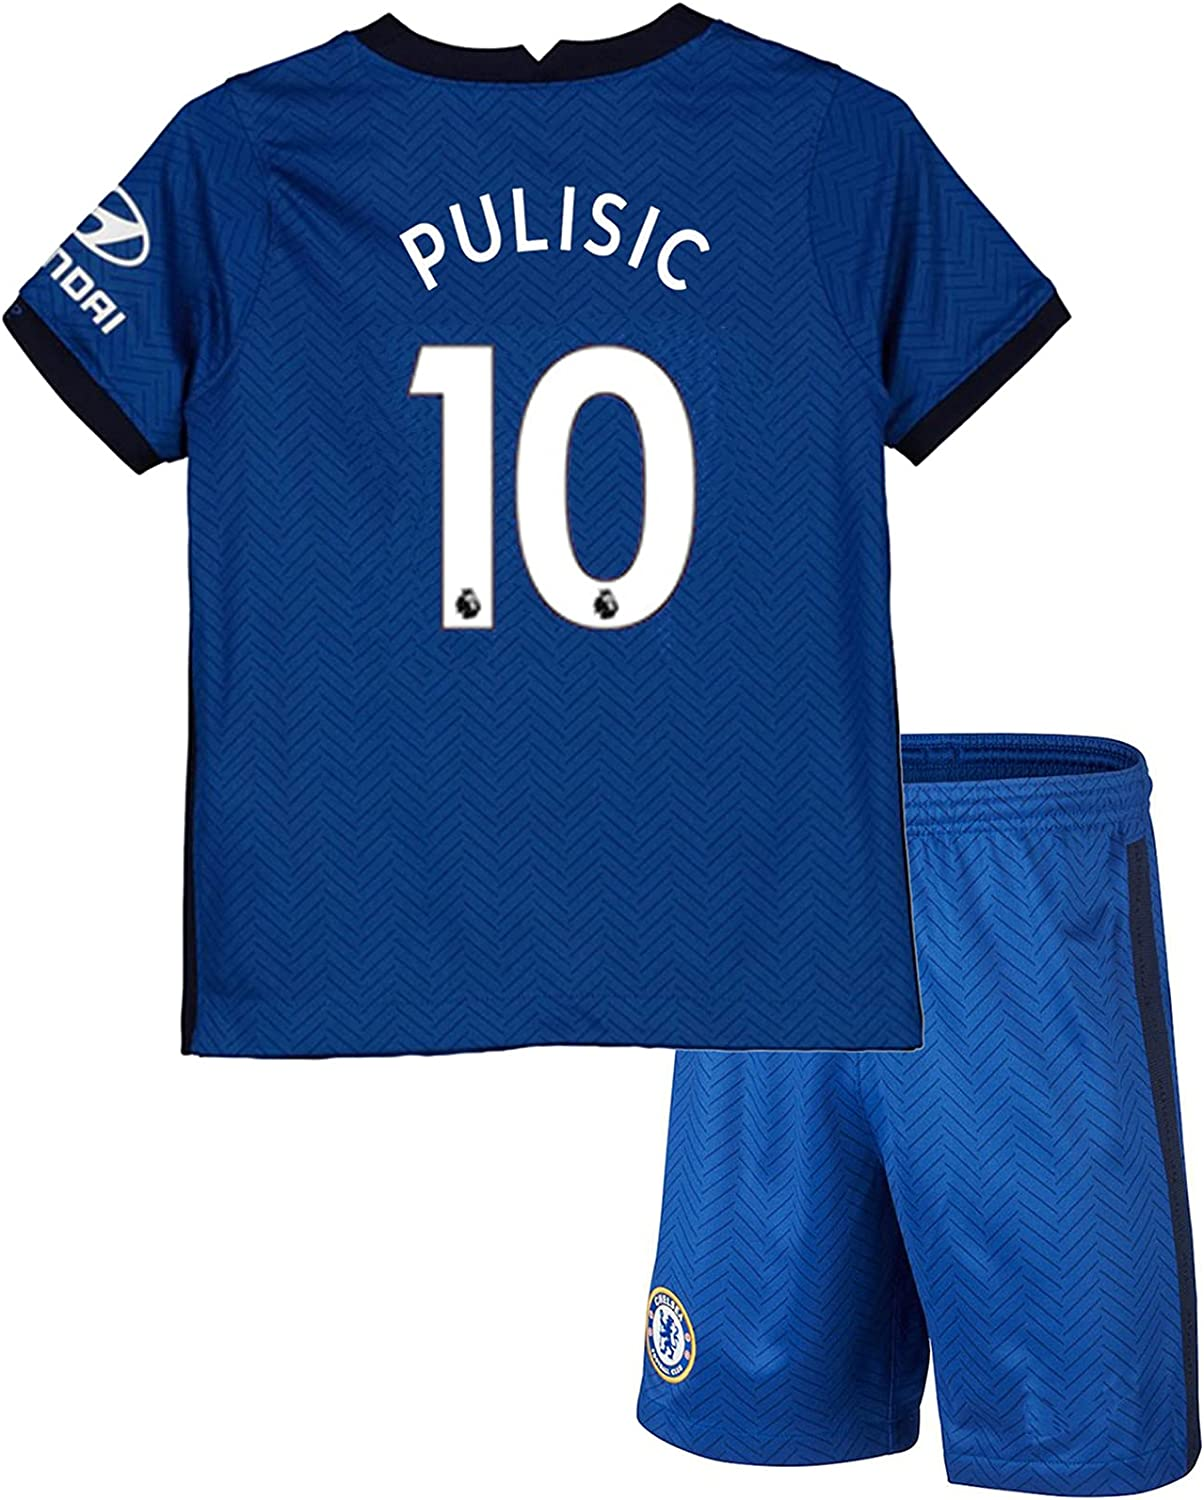 KUHSEDG High quality 100% quality warranty! new Pulisic Home 2020 2021 New Soccer FC Youths Kids Season